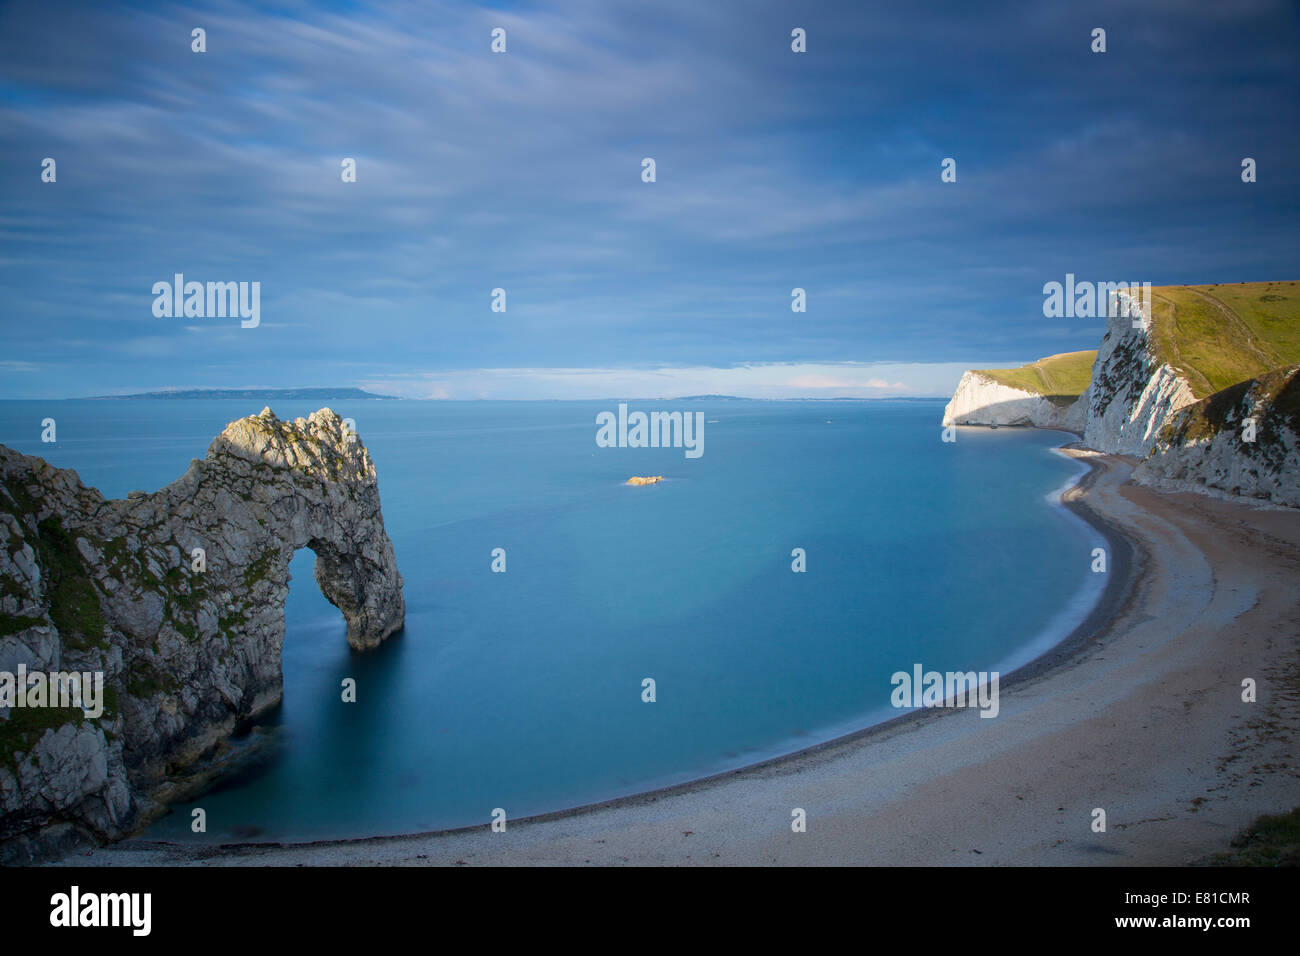 Sunrise over Durdle door and the Jurassic Coast, Dorset, England - Stock Image